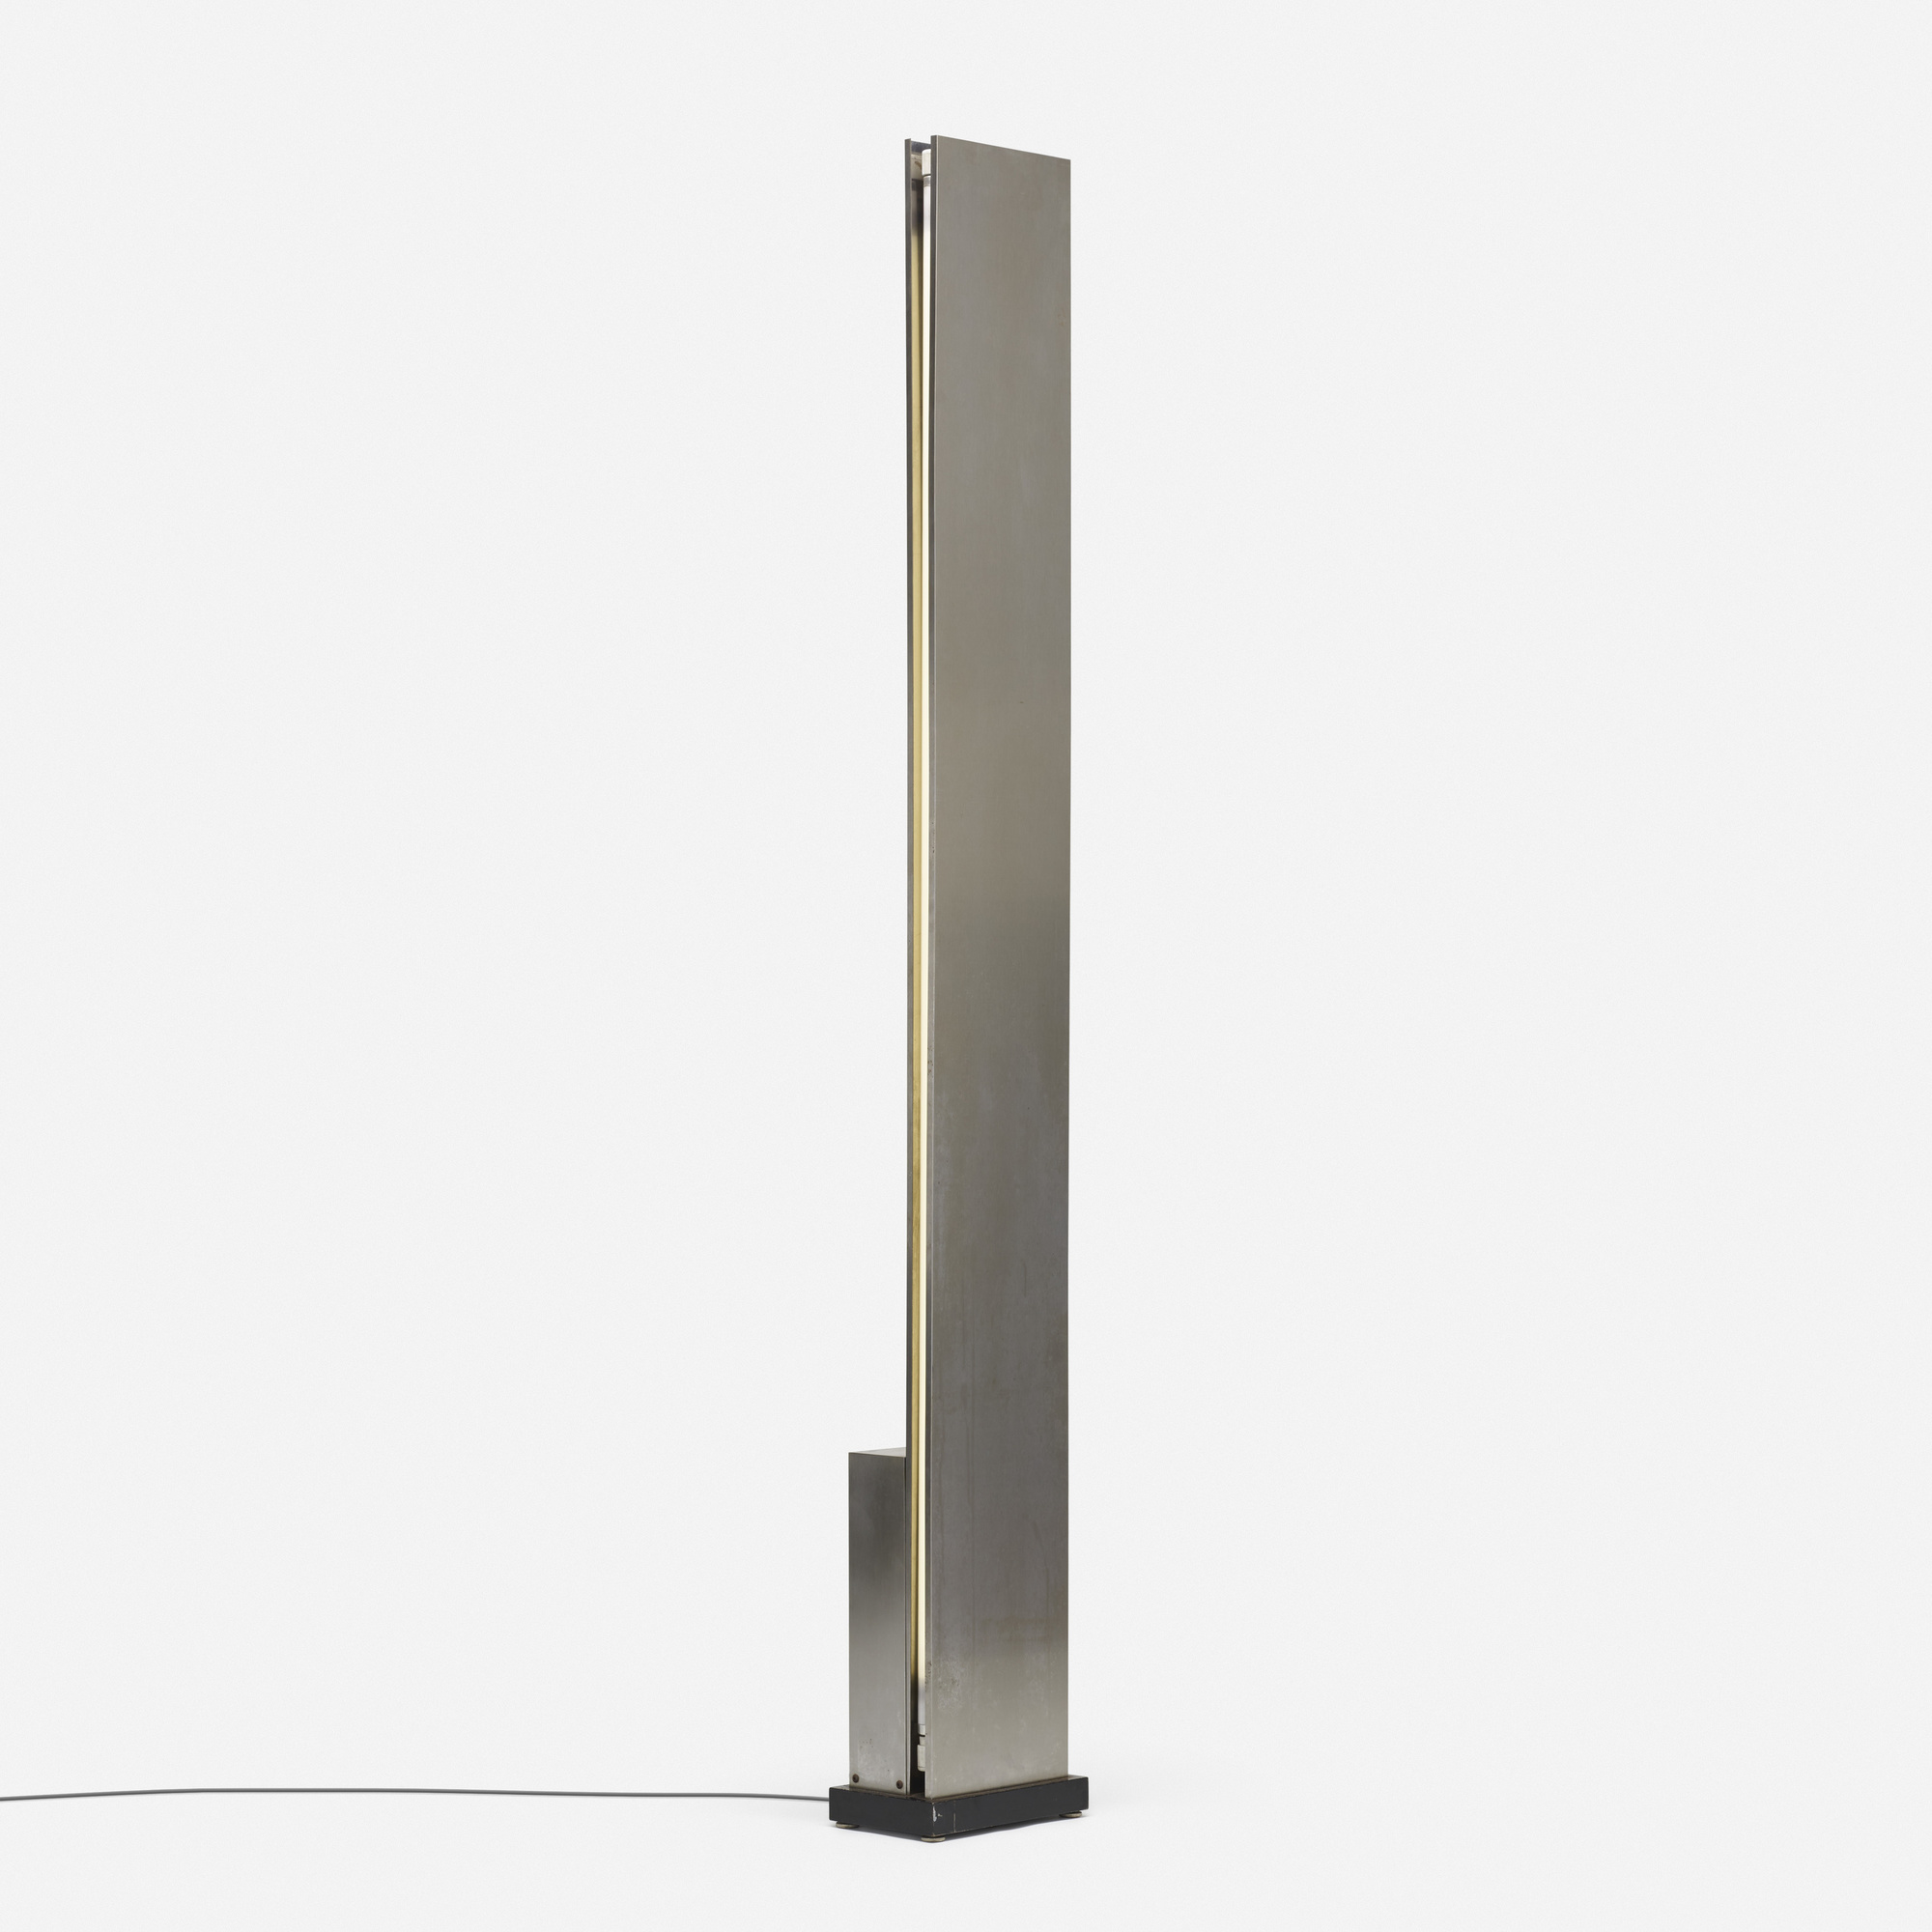 141: Nanda Vigo / Manhattan floor lamp (1 of 2)